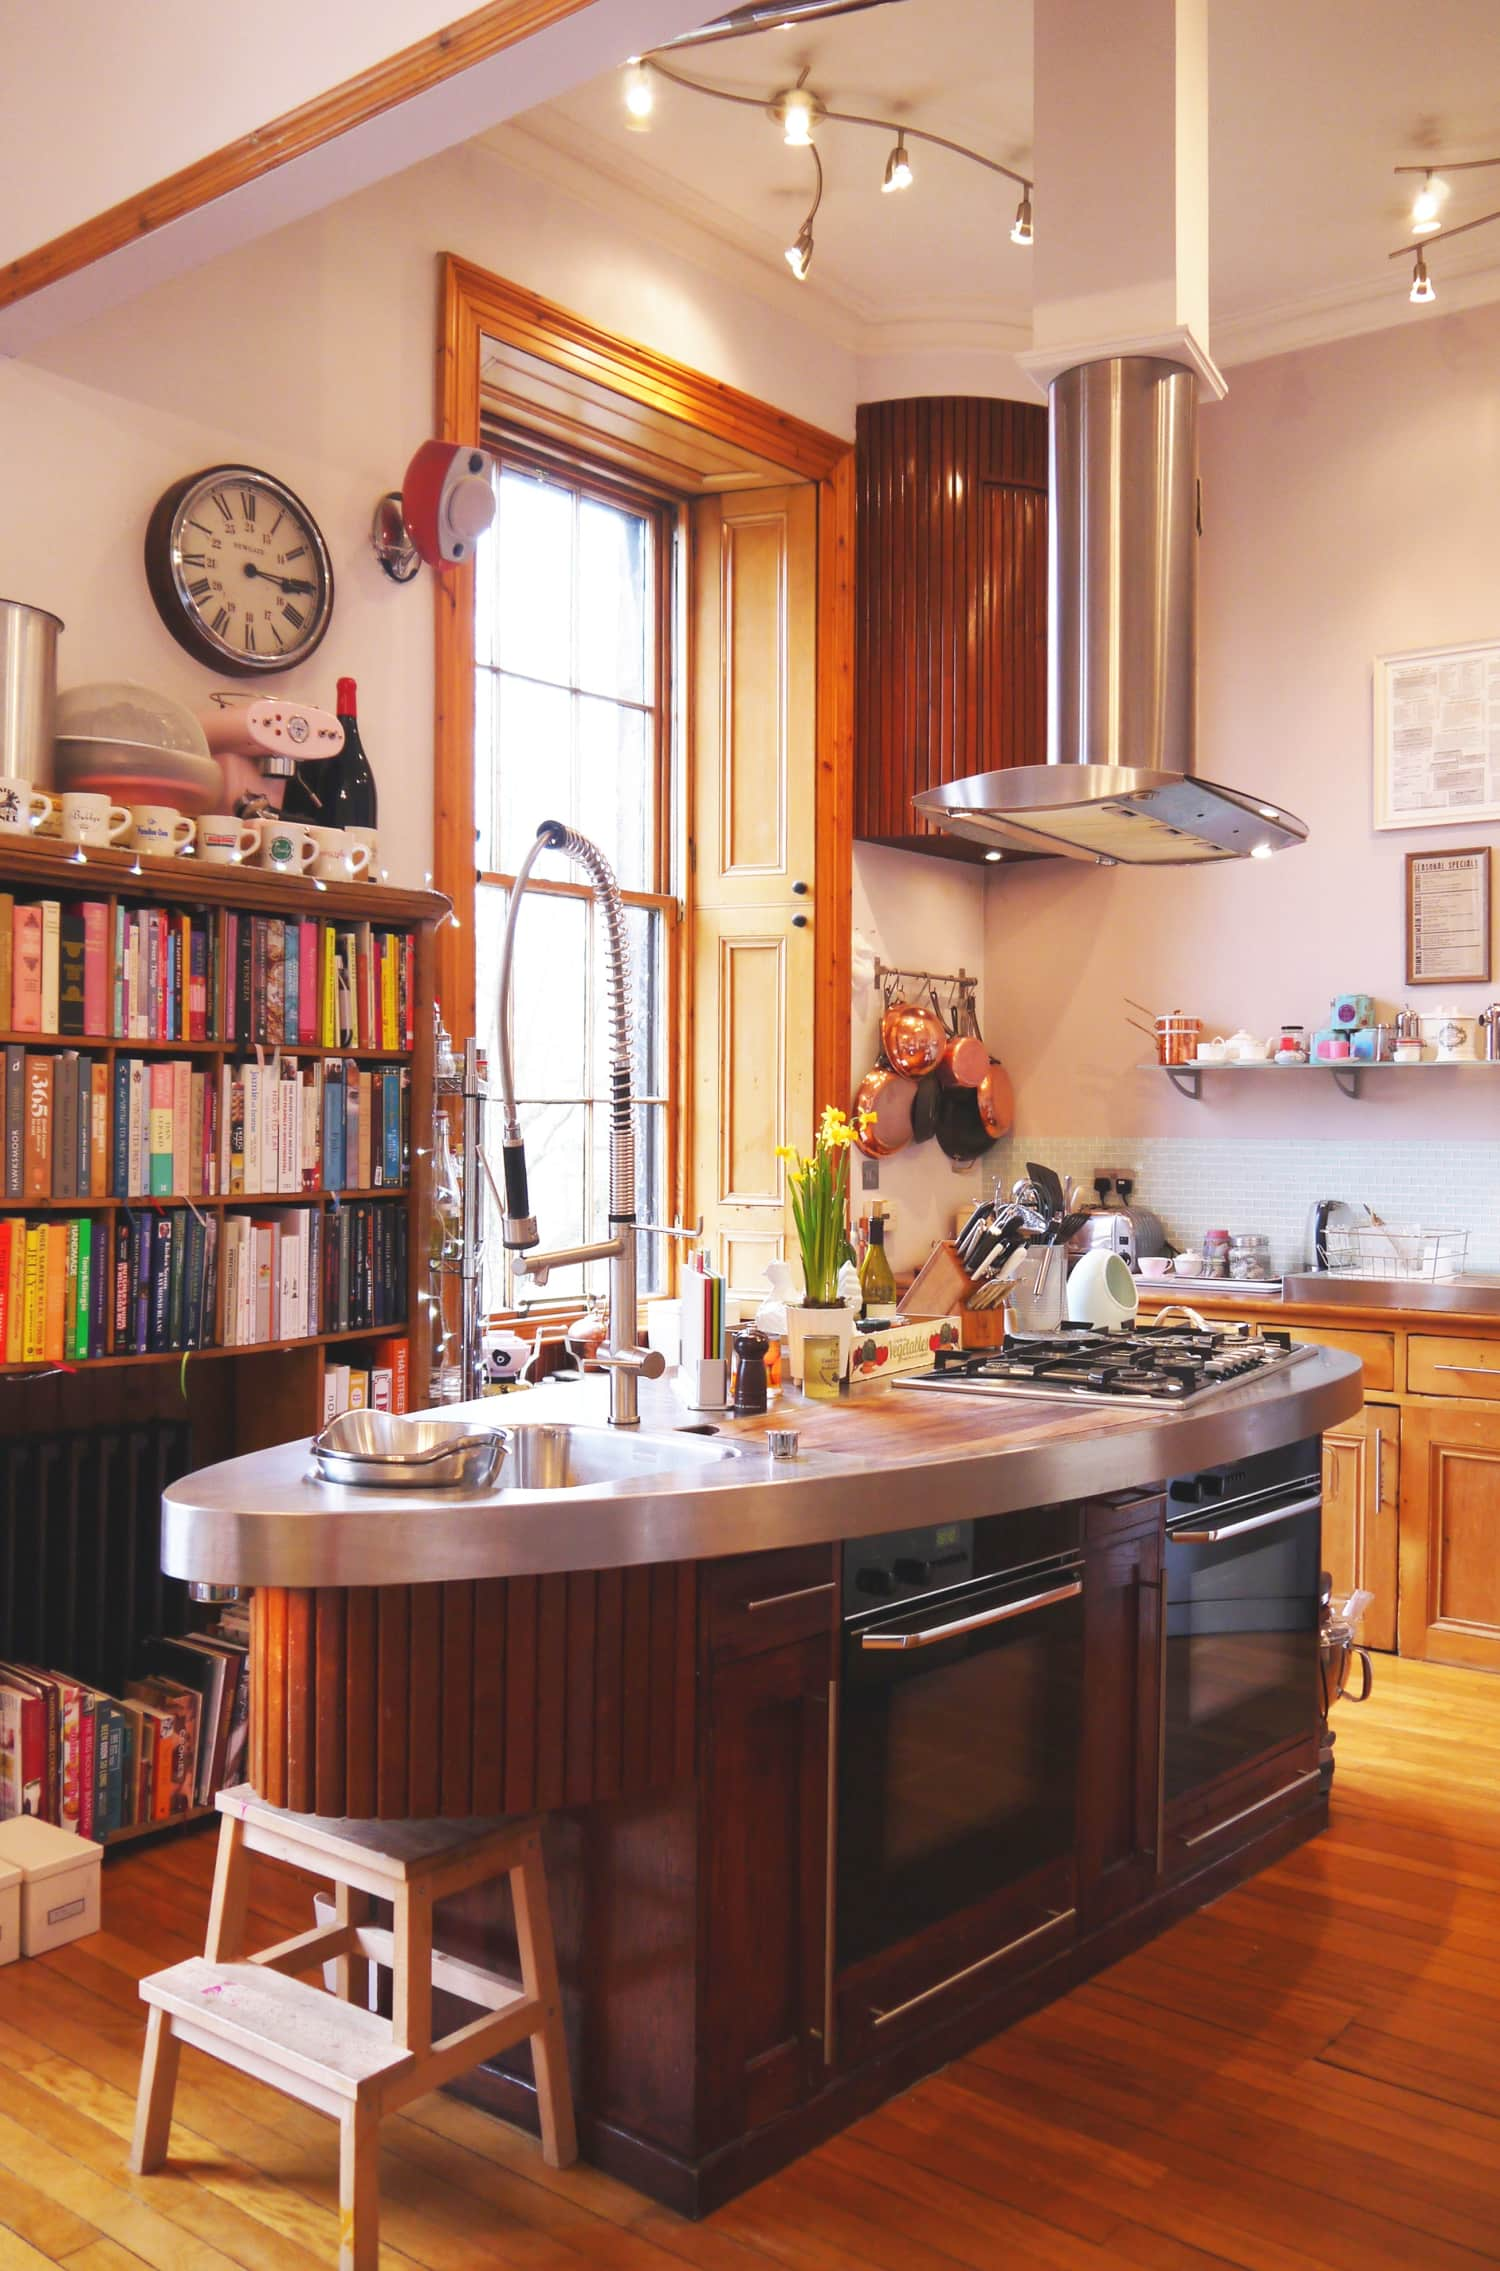 A Scottish Kitchen Made Out Of Reclaimed Ship Parts Kitchn